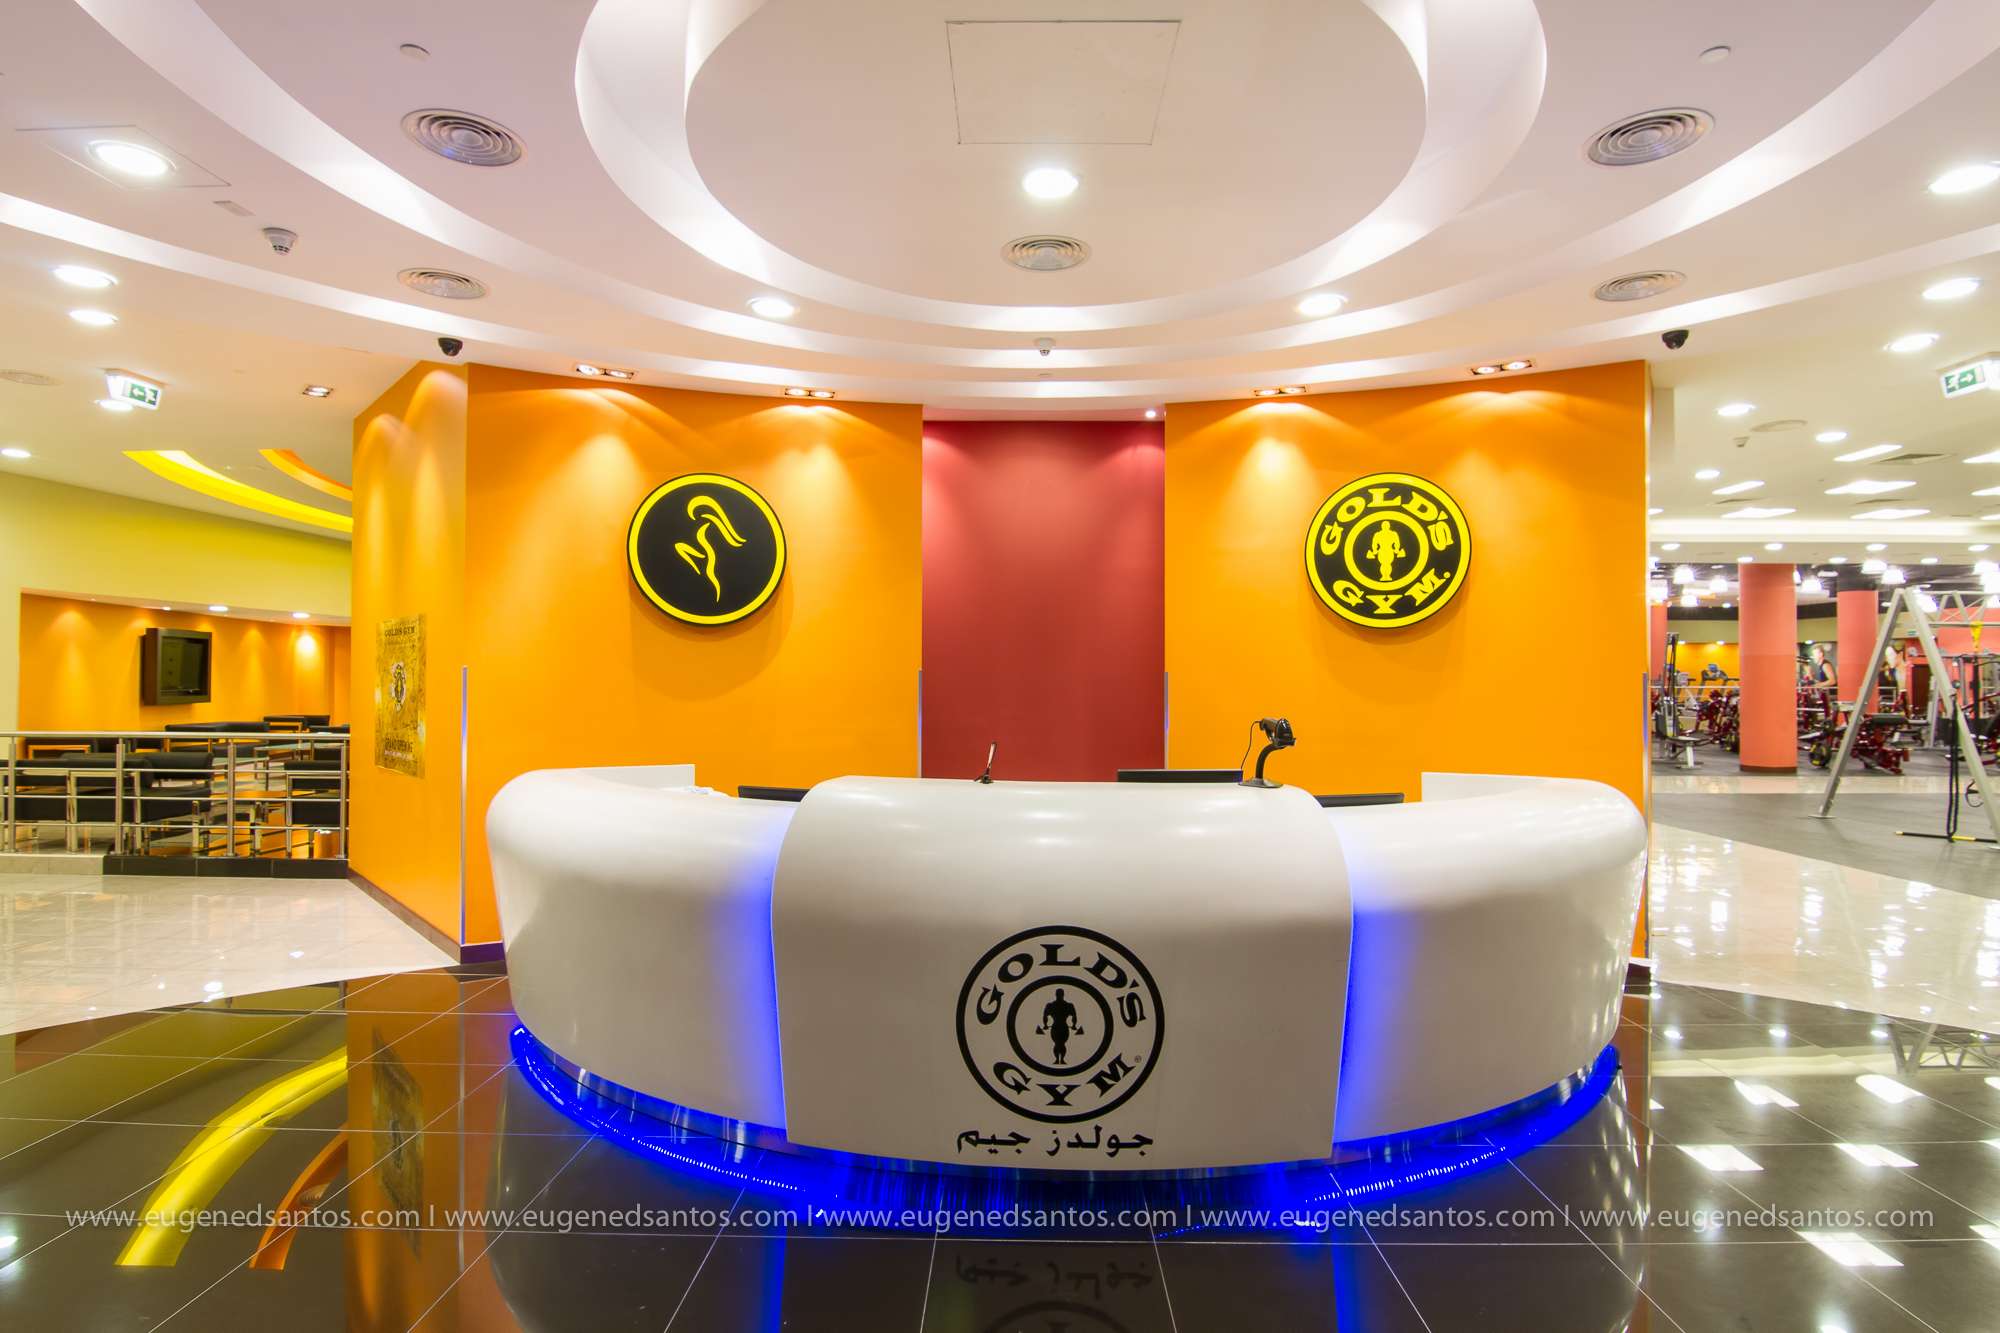 Gold's Gym Dubai